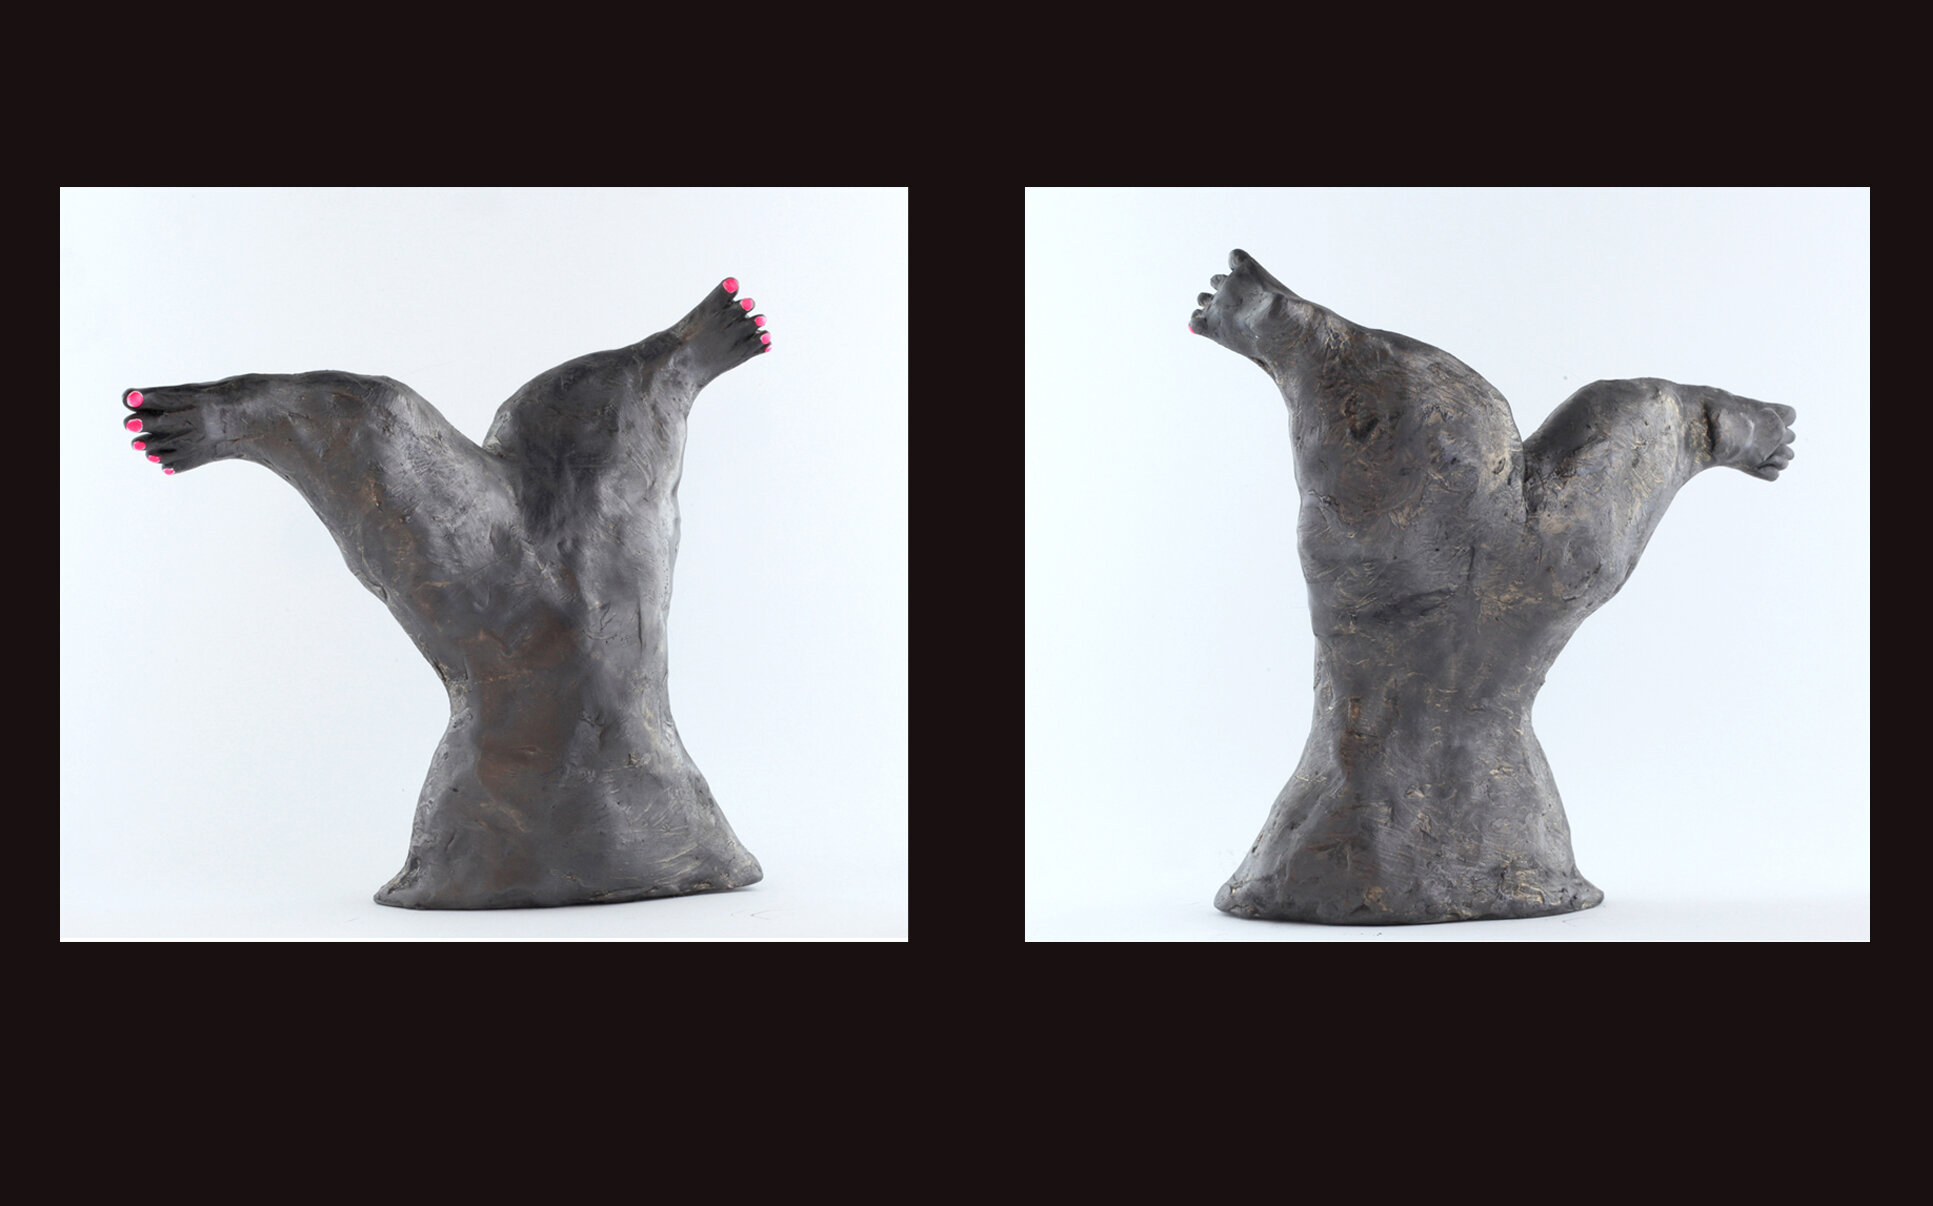 The Feet of Her Tail - A series of small sculptures, 2018.